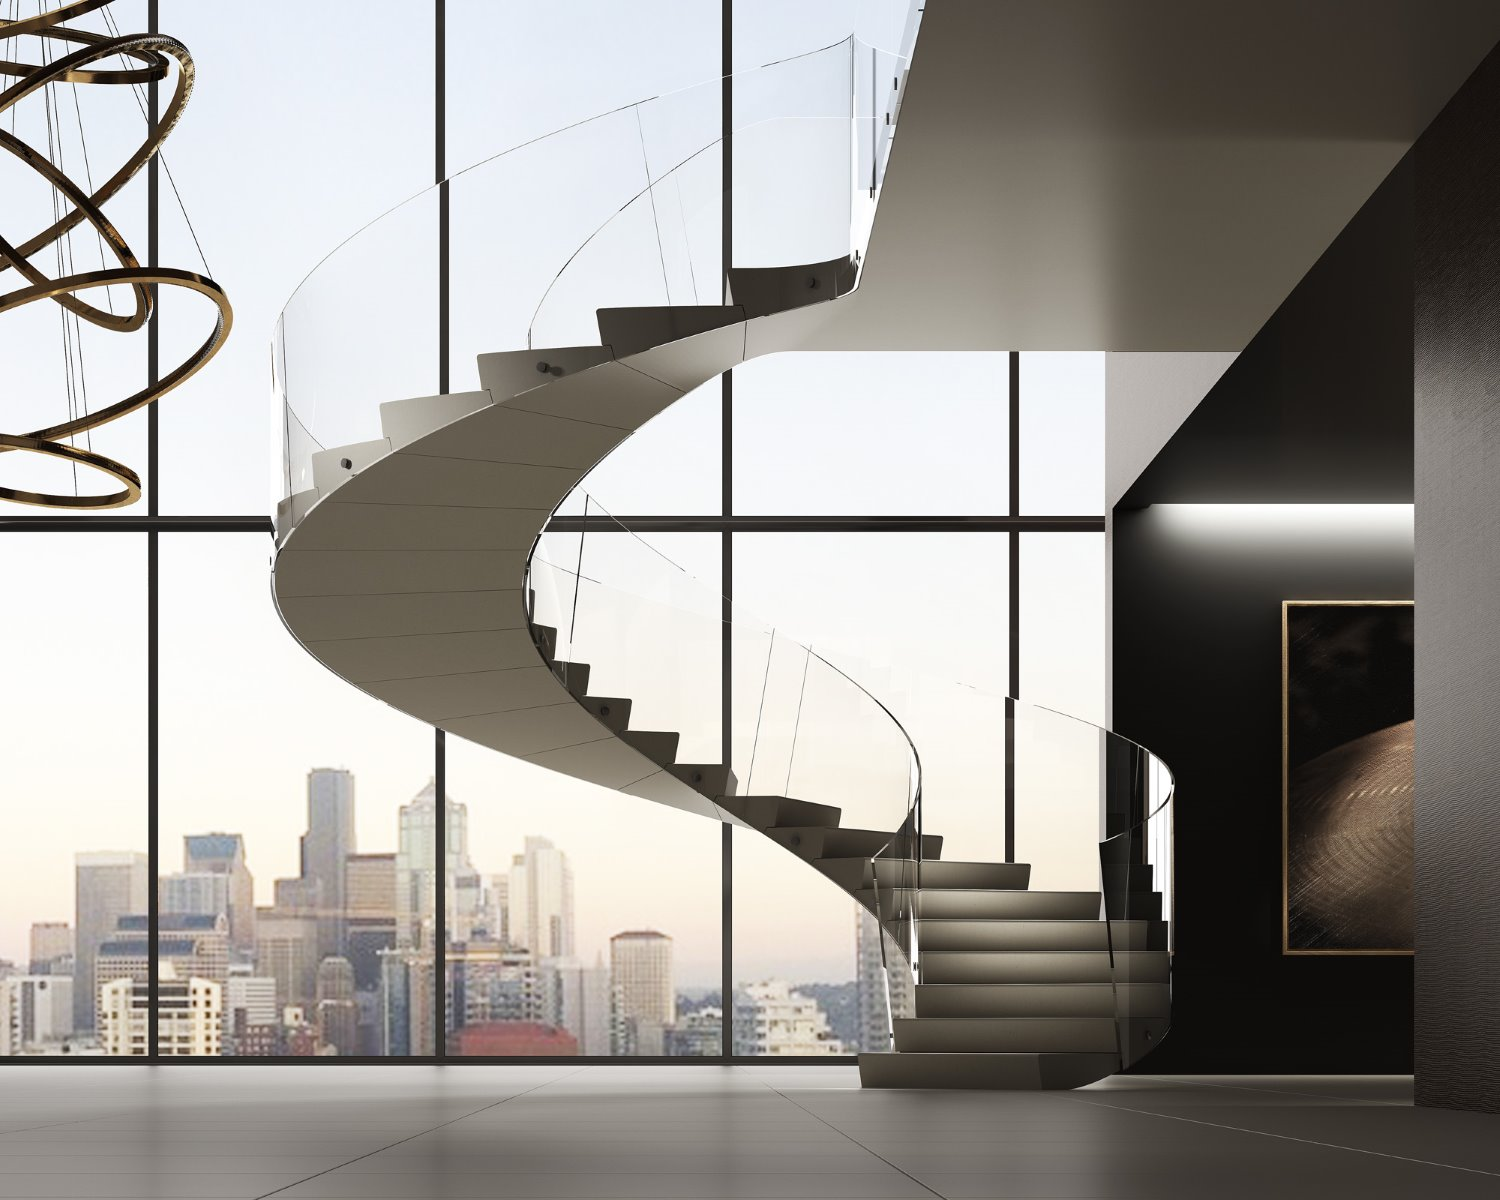 double height penthouse staircase city CGI architecture